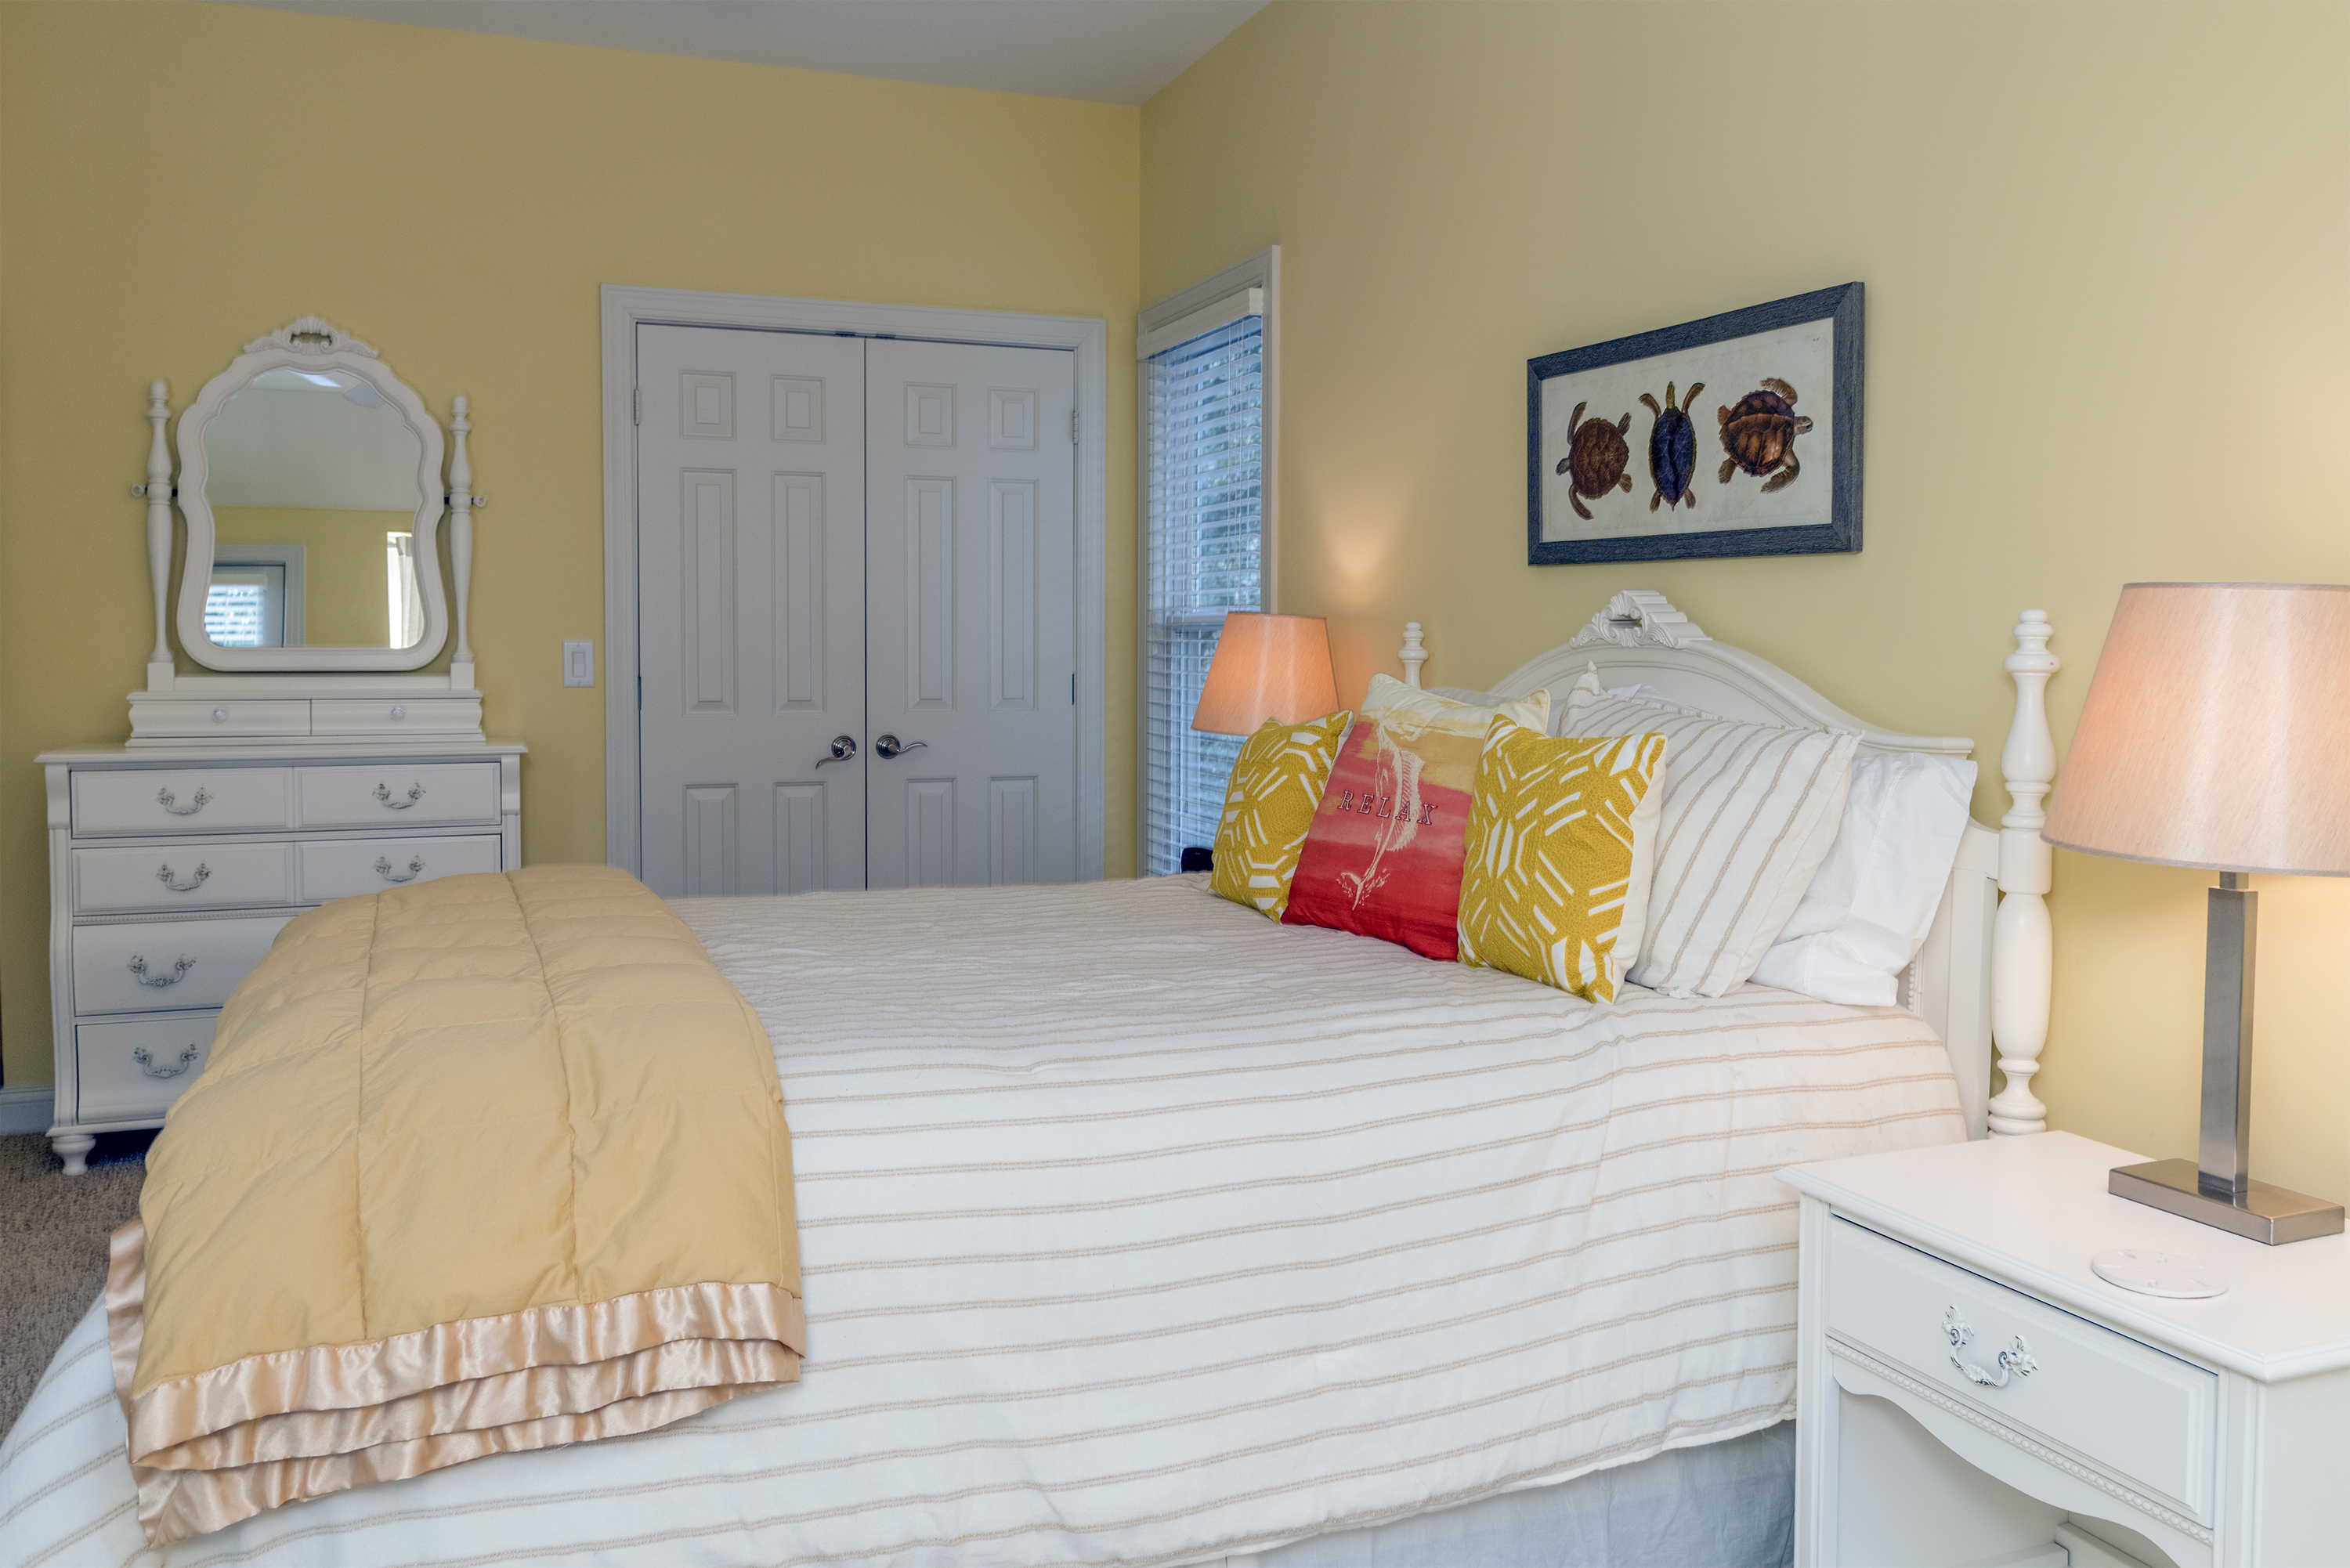 4th bedroom with queen bed.